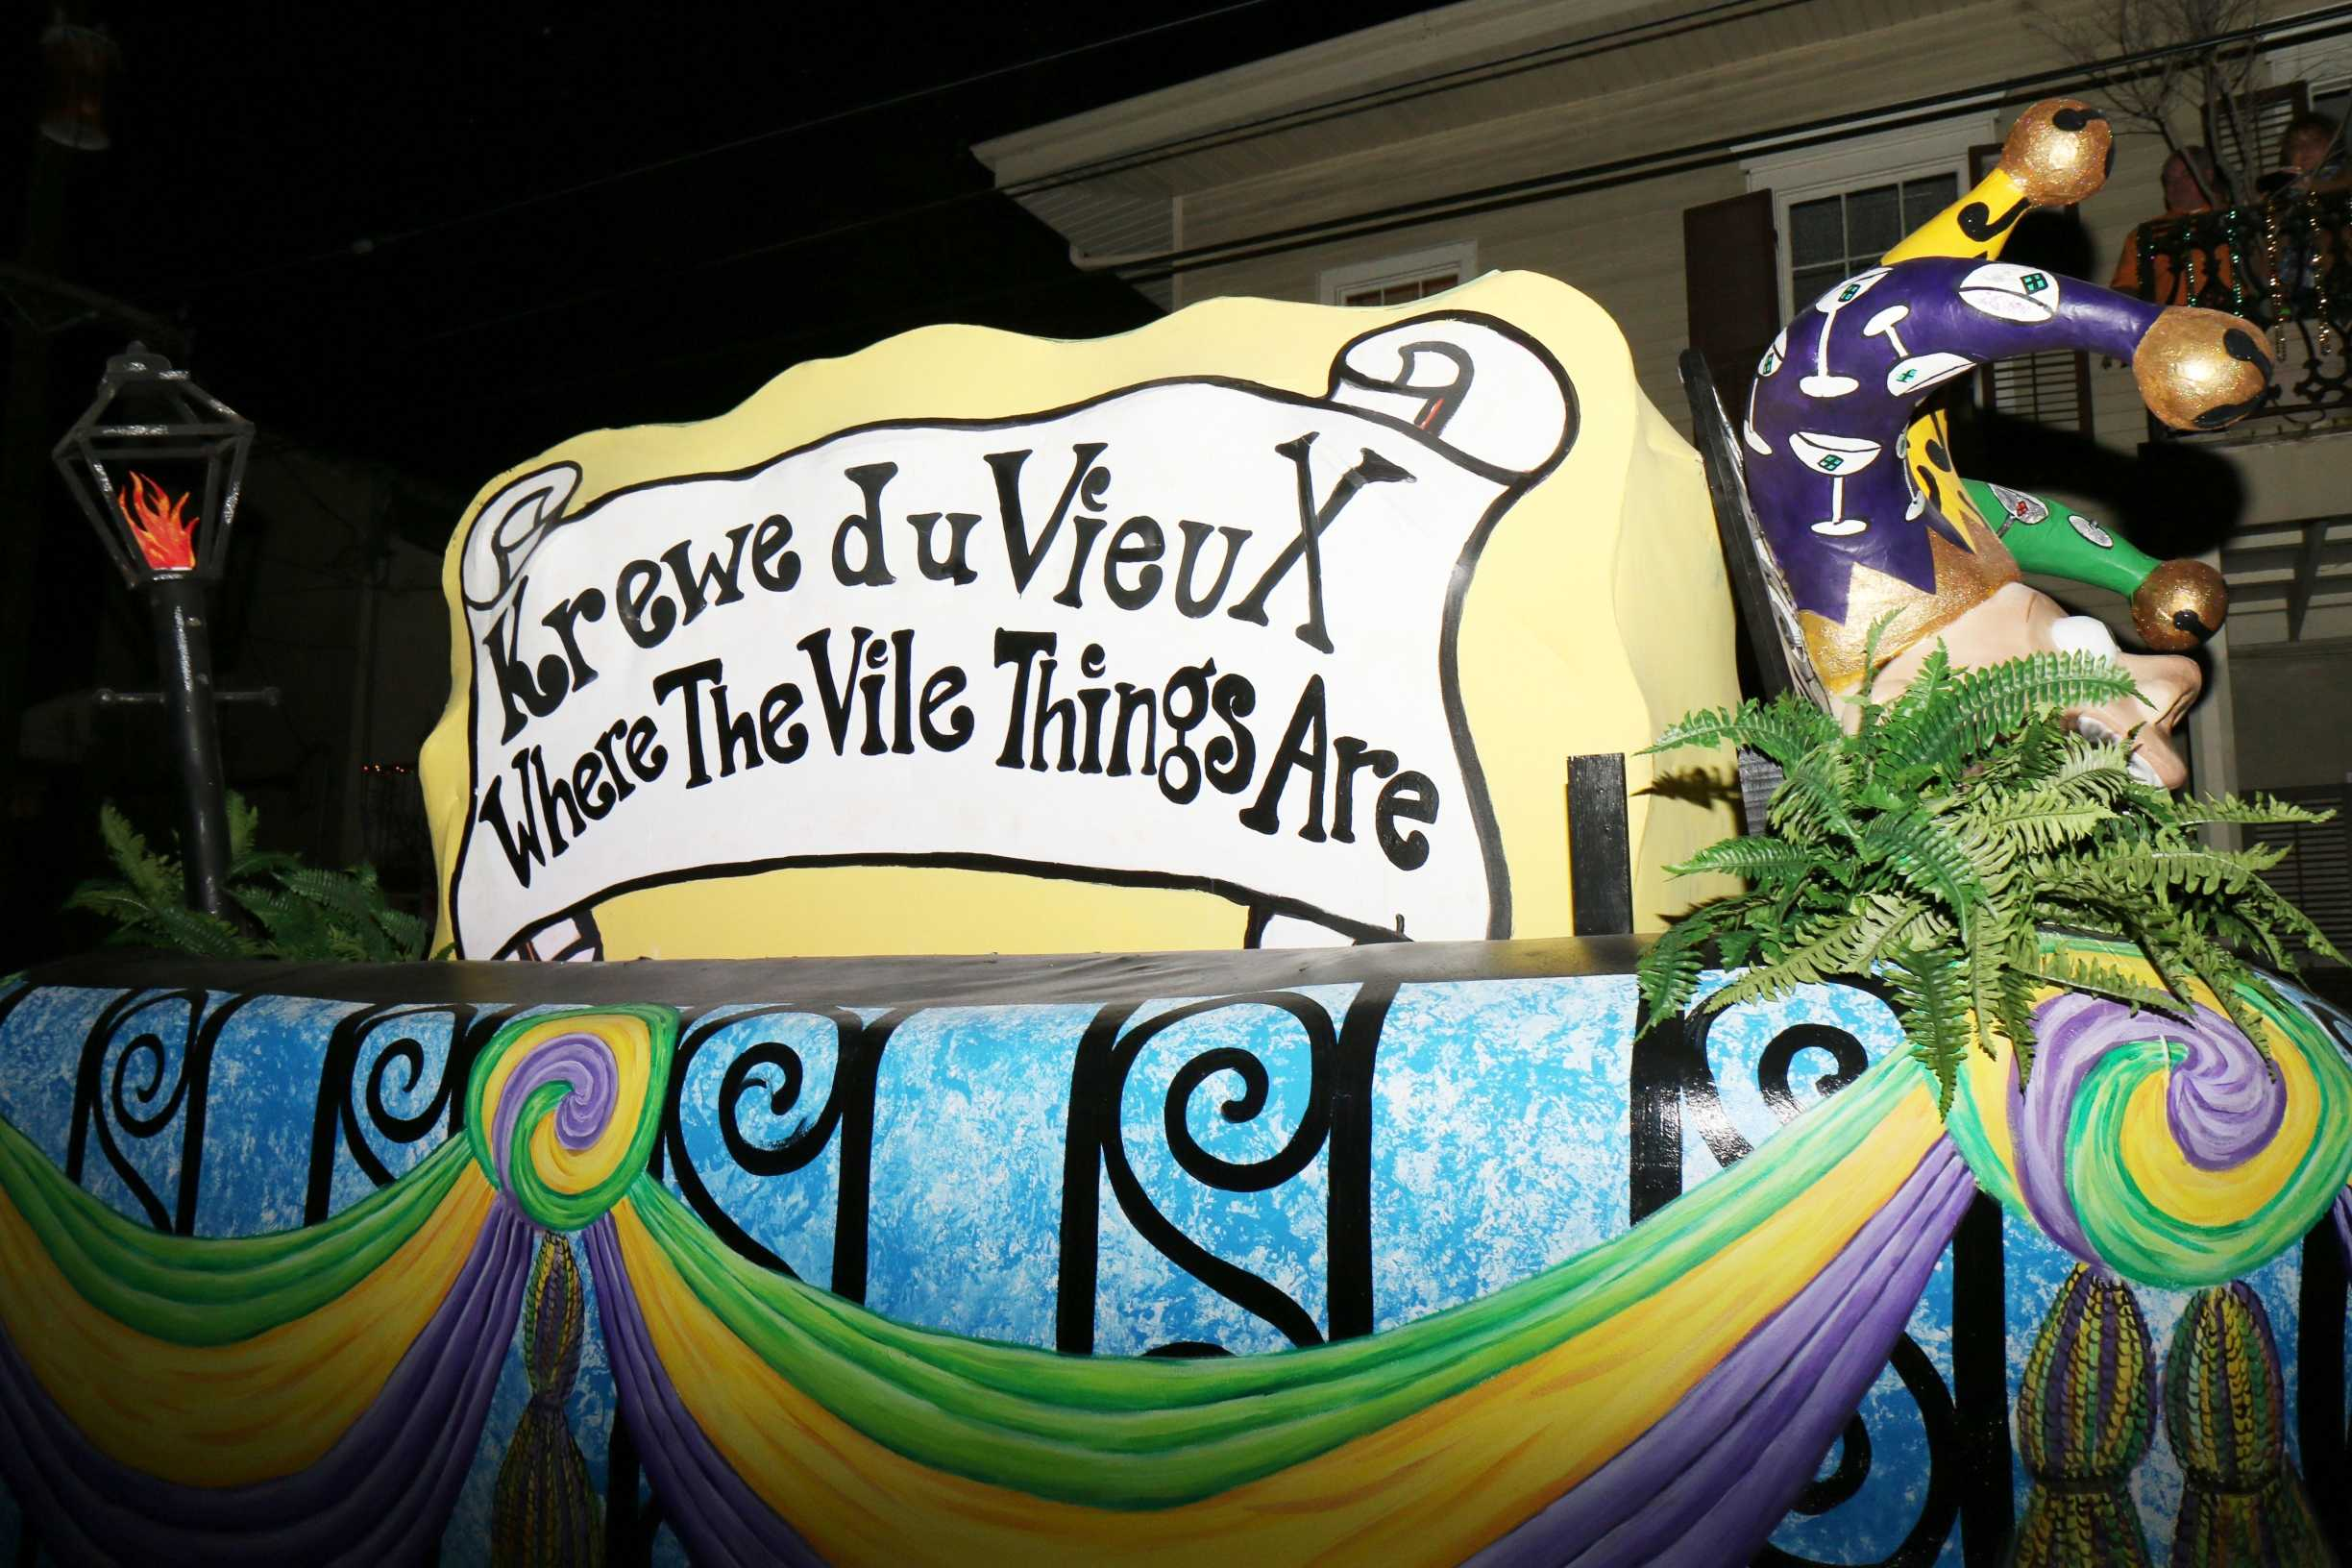 """Krewe du Vieux kicked off the start of parade season in New Orleans on Saturday, Feb. 15. Krewe du Vieux's 17 sub-krewes each presented their own interpretations of the theme """"Where The Vile Things Are."""" Historian and wetlands restoration advocate John Barry was honored as the krewe's king. Krewe Delusion followed Krewe du Vieux."""